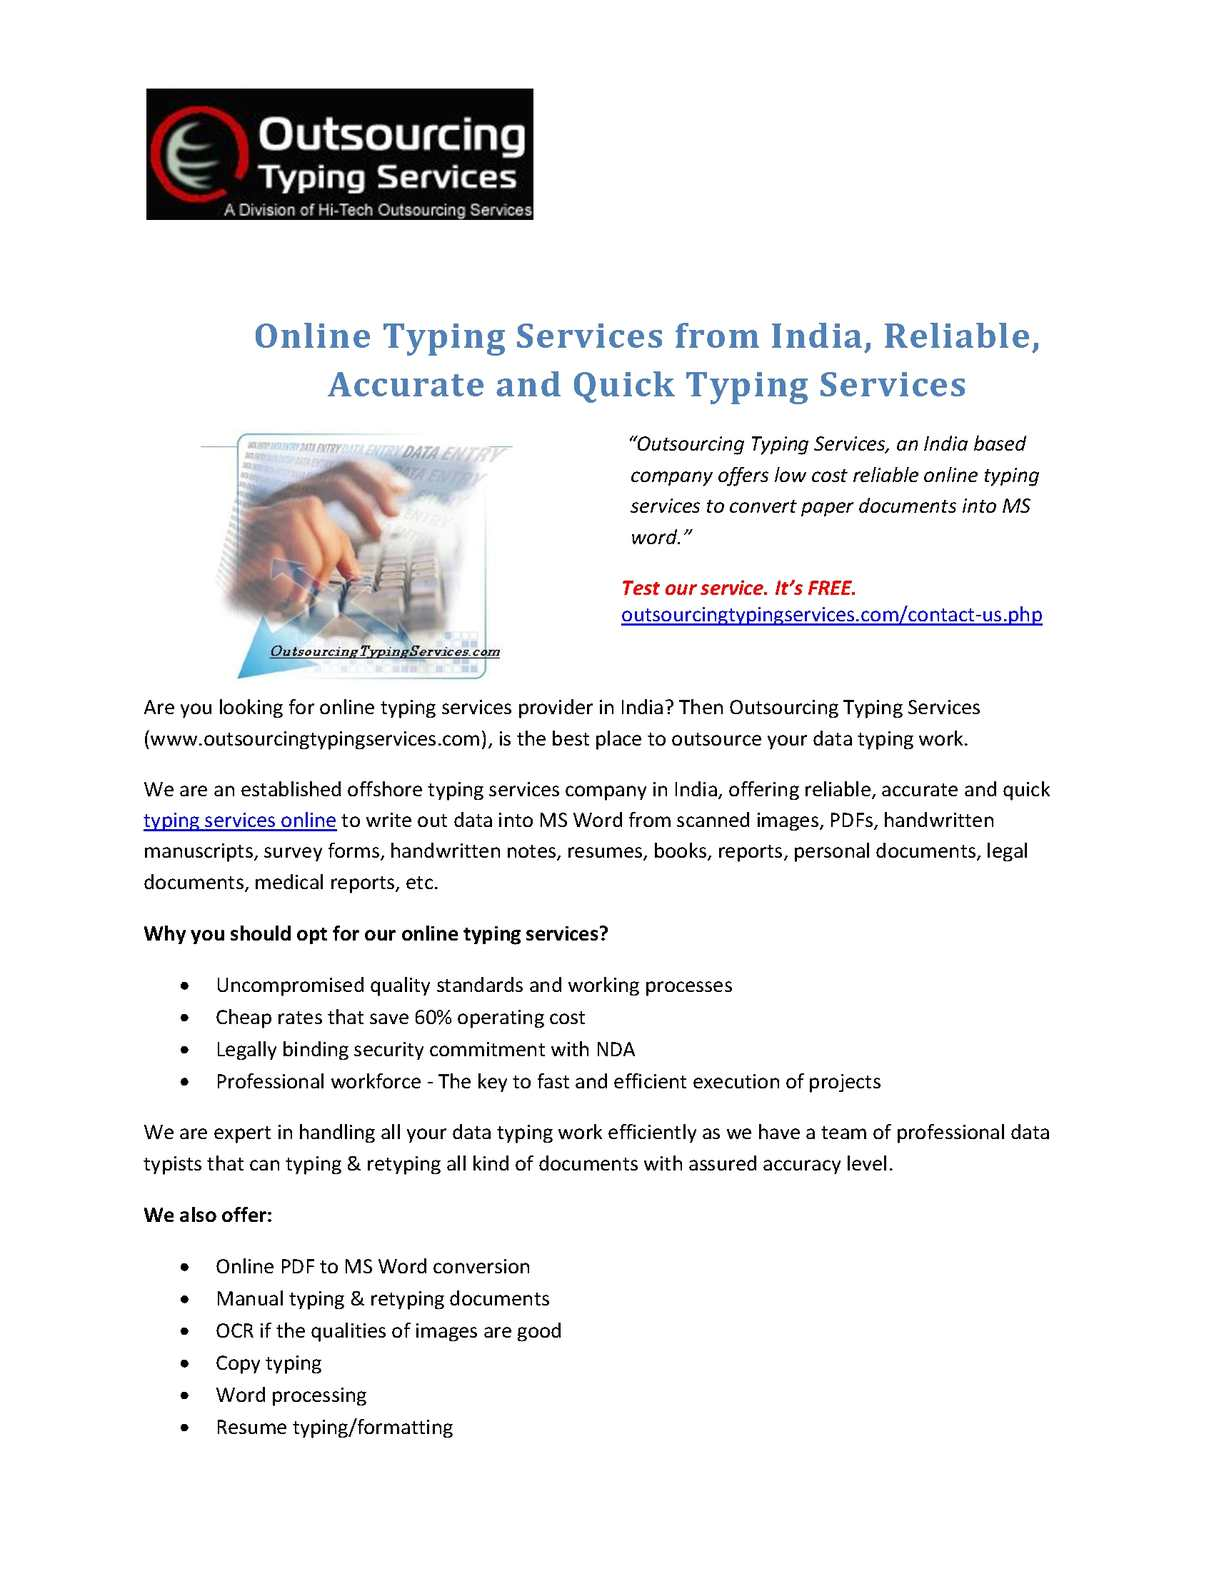 calaméo online typing services from india reliable accurate